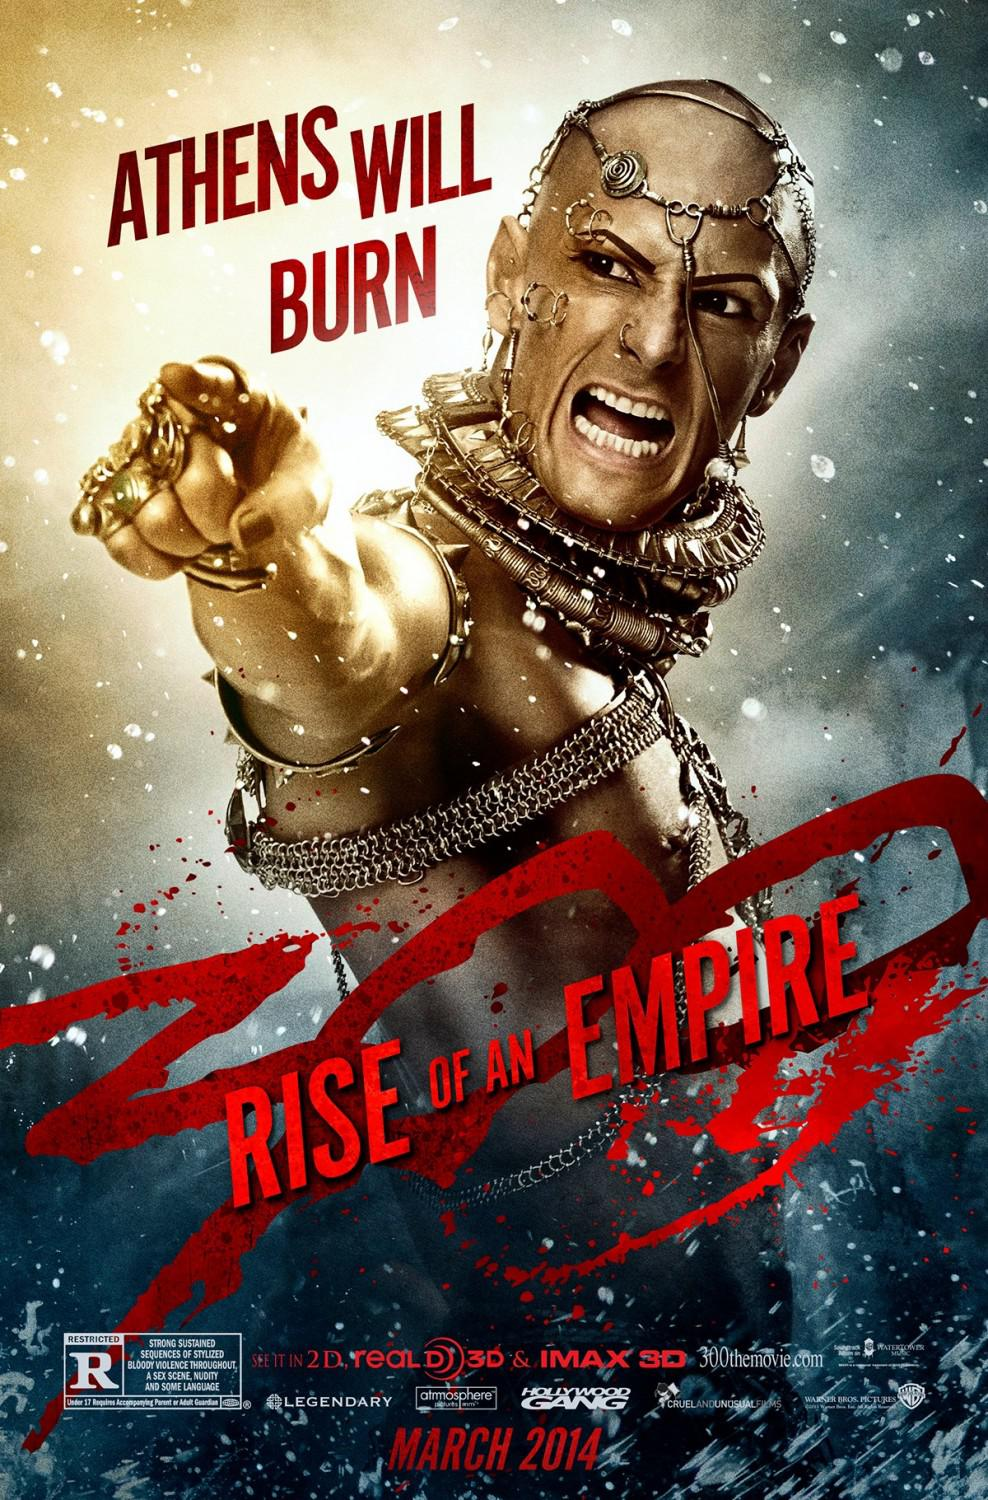 300 Alba di un Impero - Three hundred rise of an Empire - Athens will burn